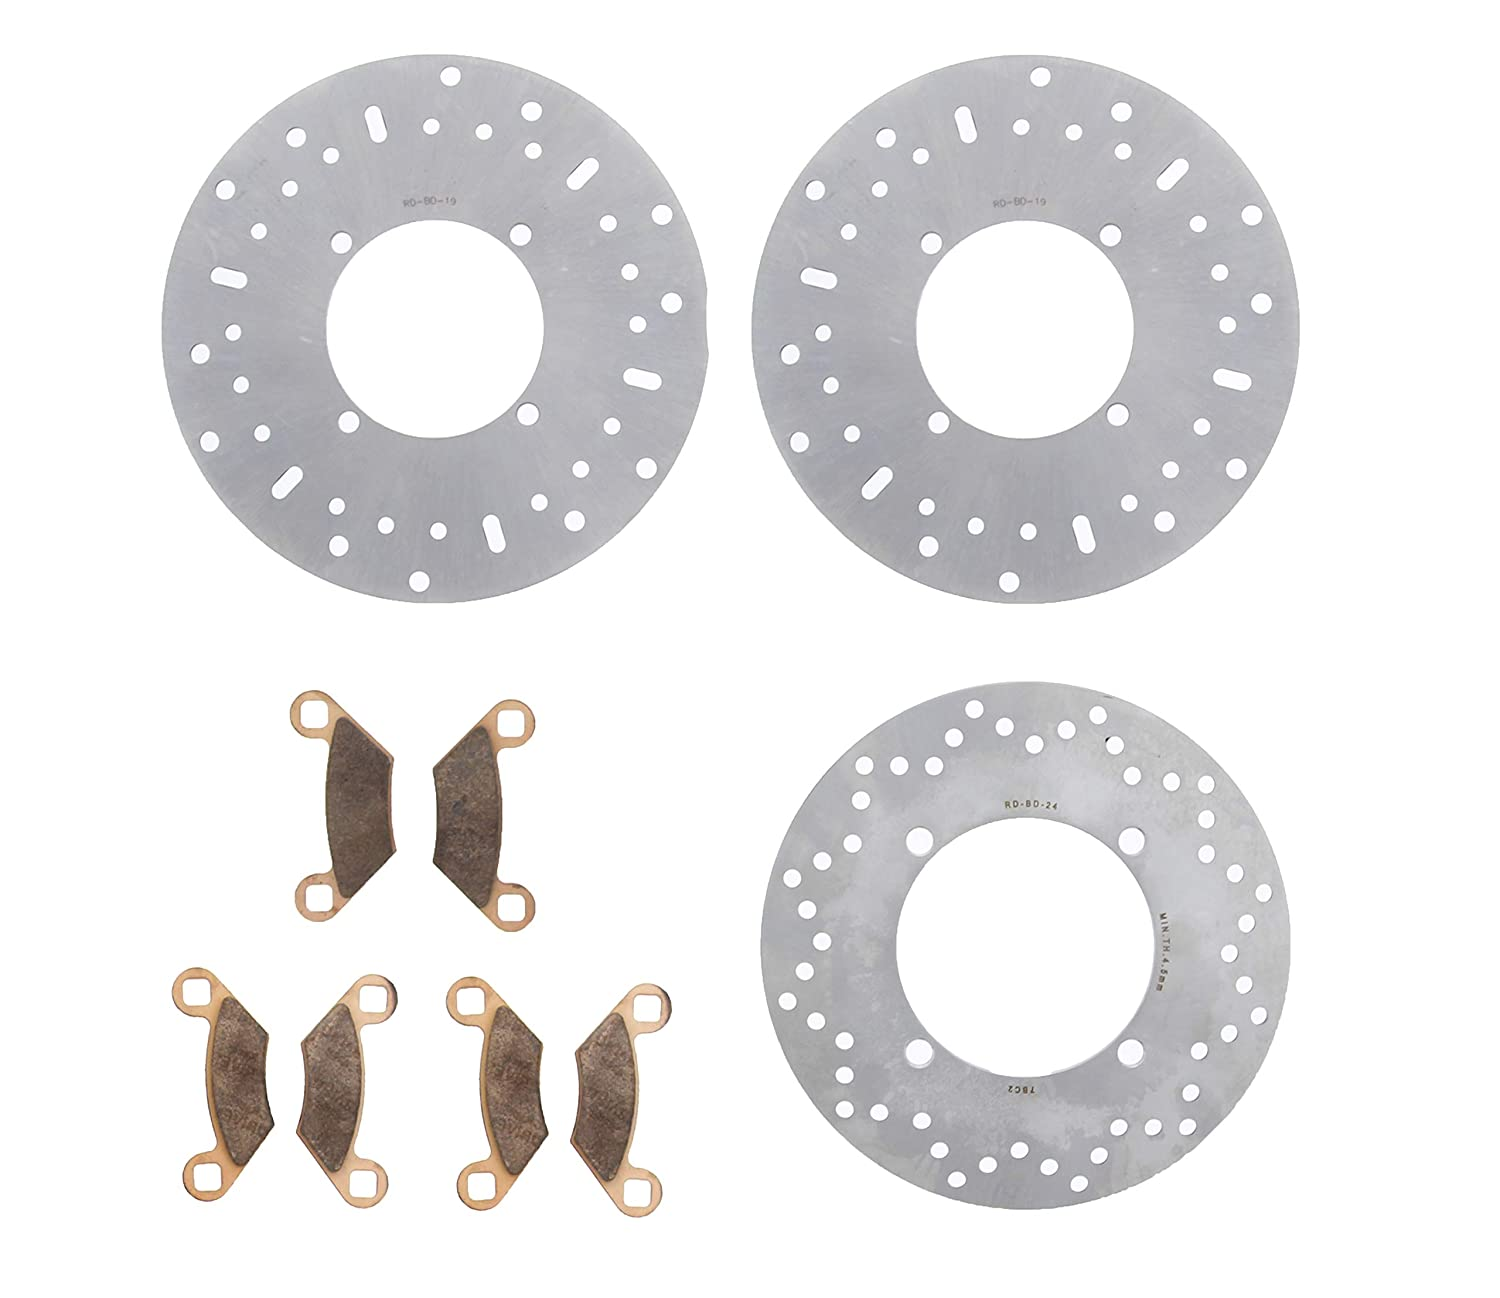 2014-17 Polaris Sportsman 570 Touring Front & Rear Brake Rotors & Brake Pads Race-Driven 4333347626